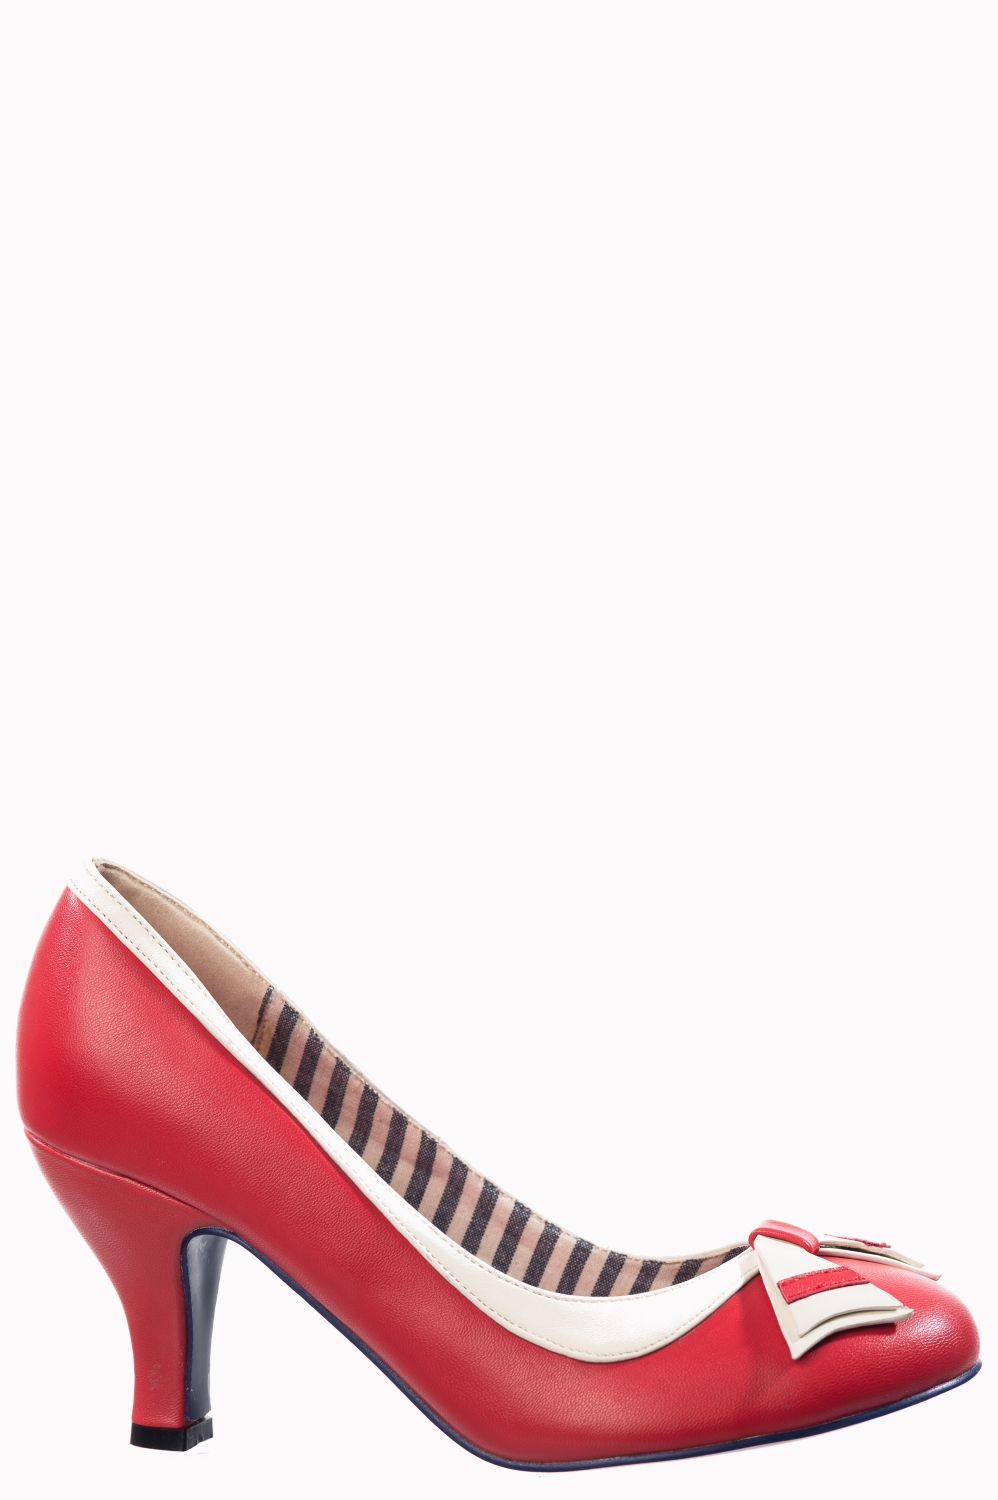 Banned Retro Sparkle Falls Nautical Vegan Heels In Red